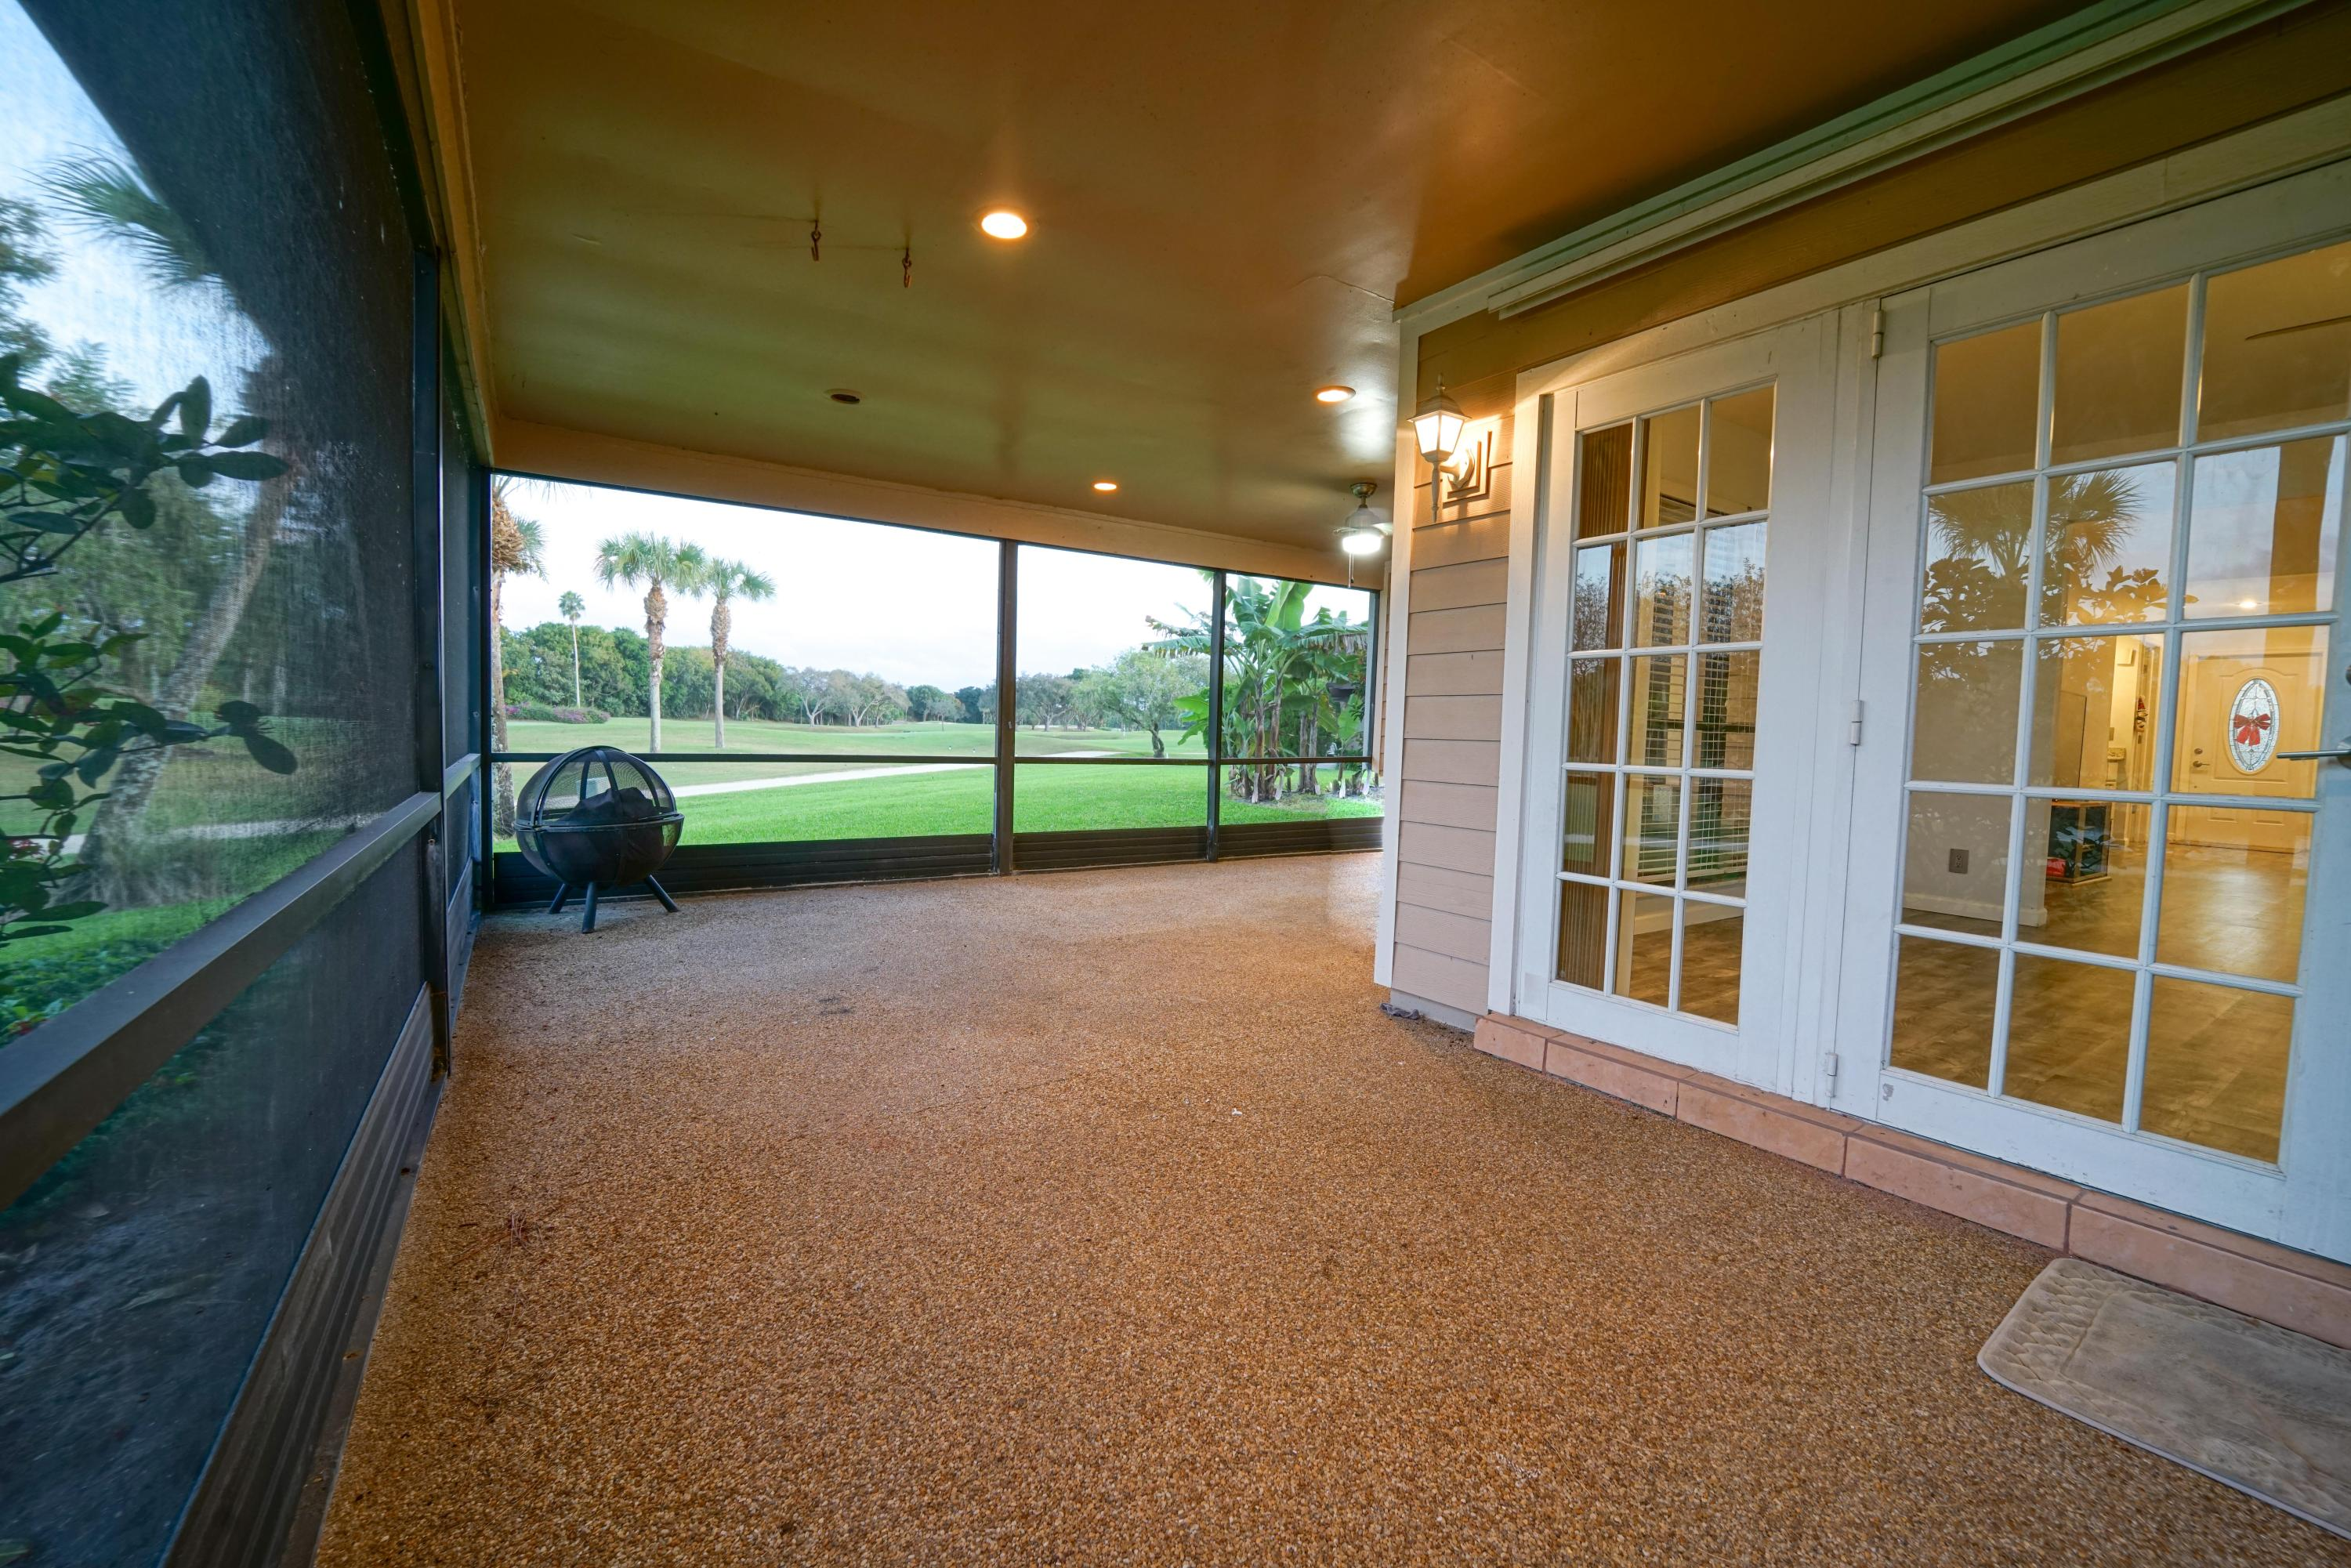 13868 Whispering Lakes Lane, Palm Beach Gardens, Florida 33418, 2 Bedrooms Bedrooms, ,2.1 BathroomsBathrooms,A,Single family,Whispering Lakes,RX-10488240